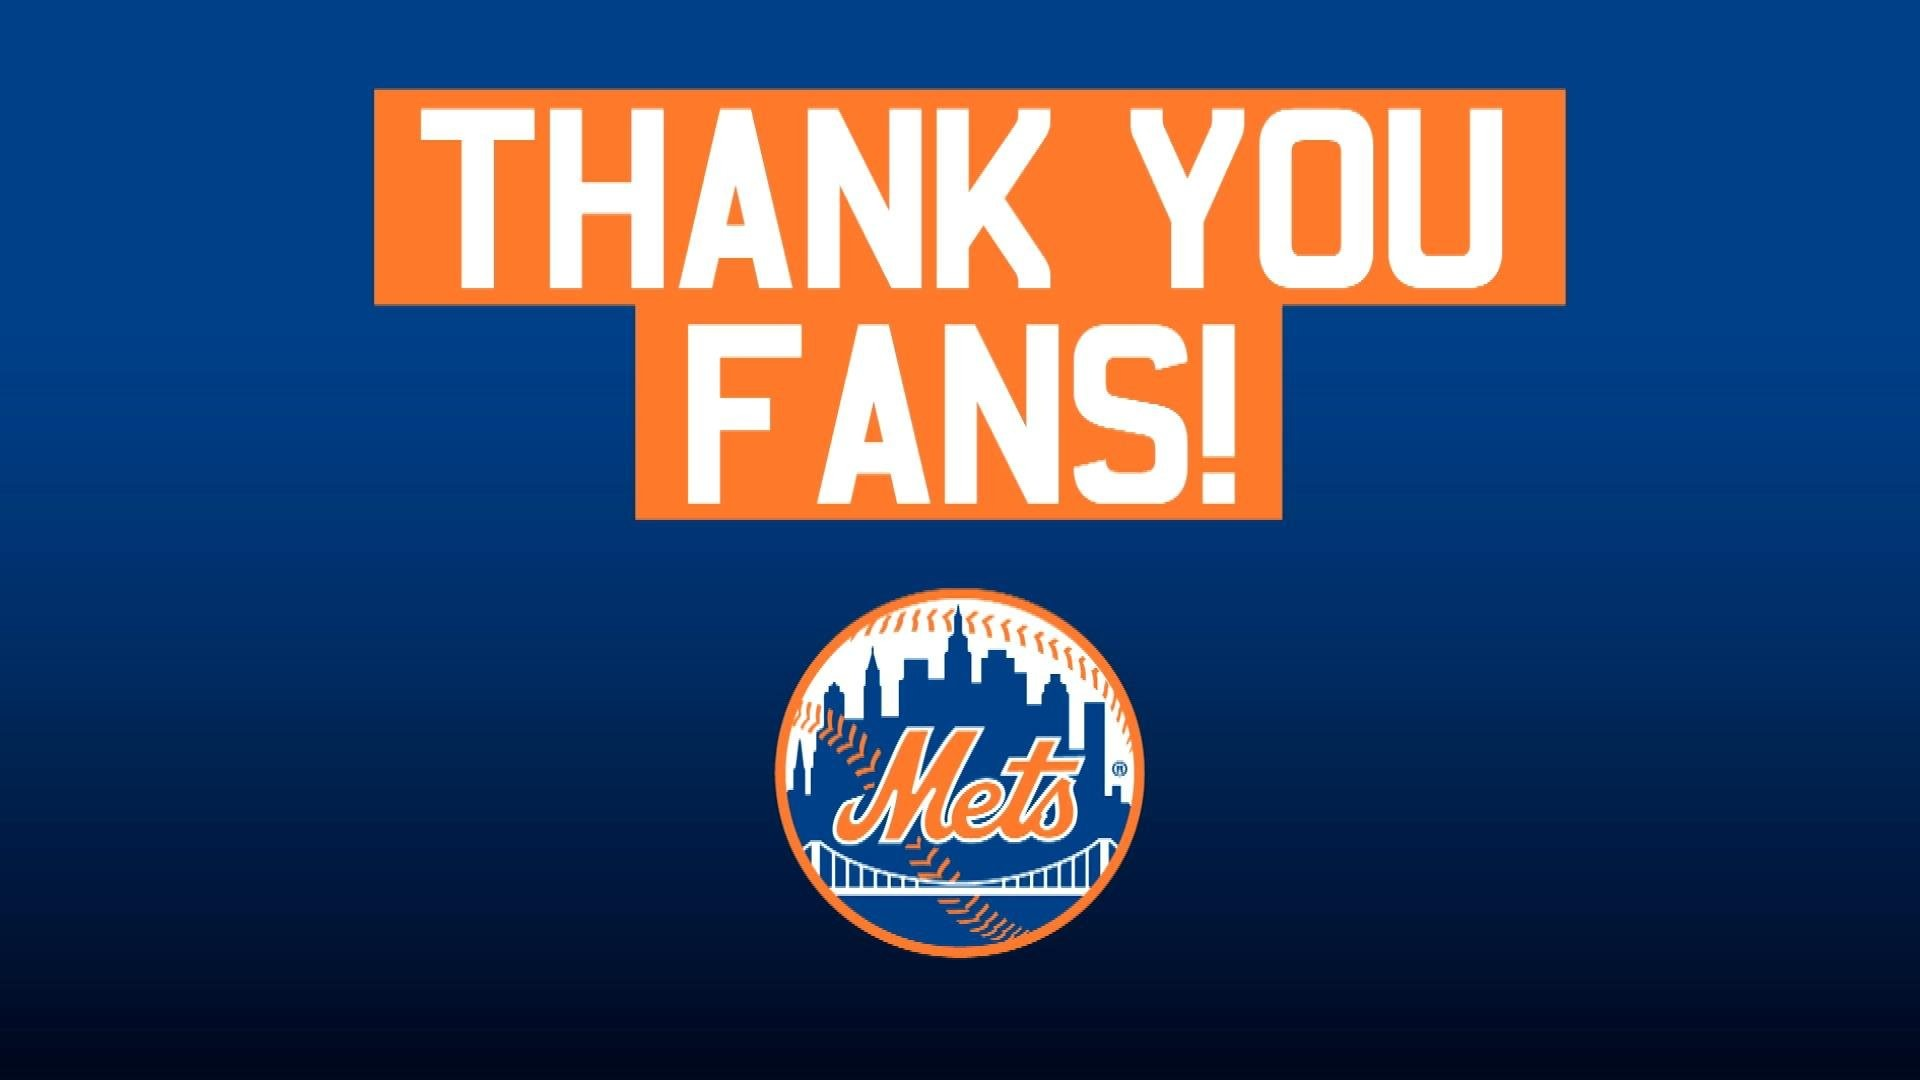 New York Mets Wallpaper: NY Mets Images And Wallpaper (72+ Images